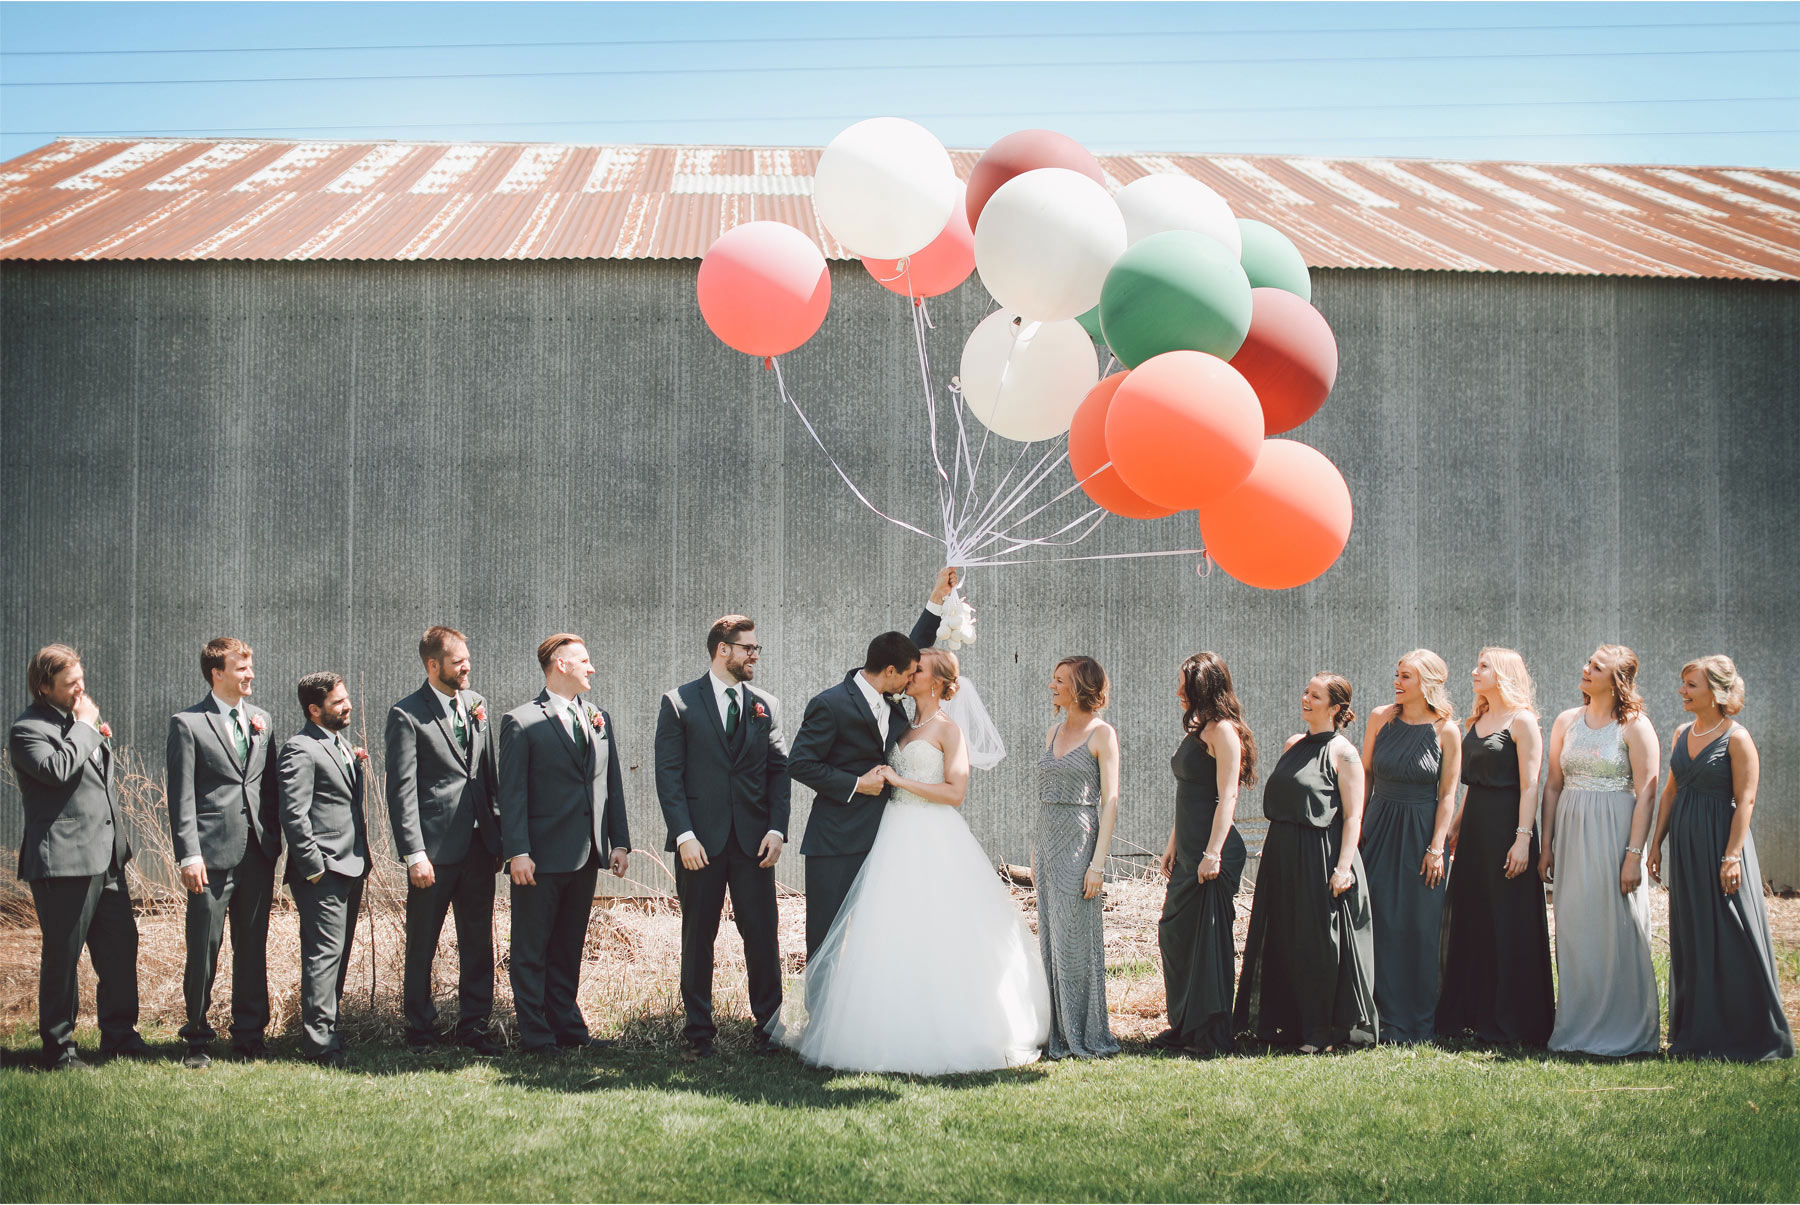 08-Minneapolis-Wedding-Photography-by-Vick-Photography-Balloons-Wedding-Party-Group-Country-Barn-Kasie-and-Joshua.jpg